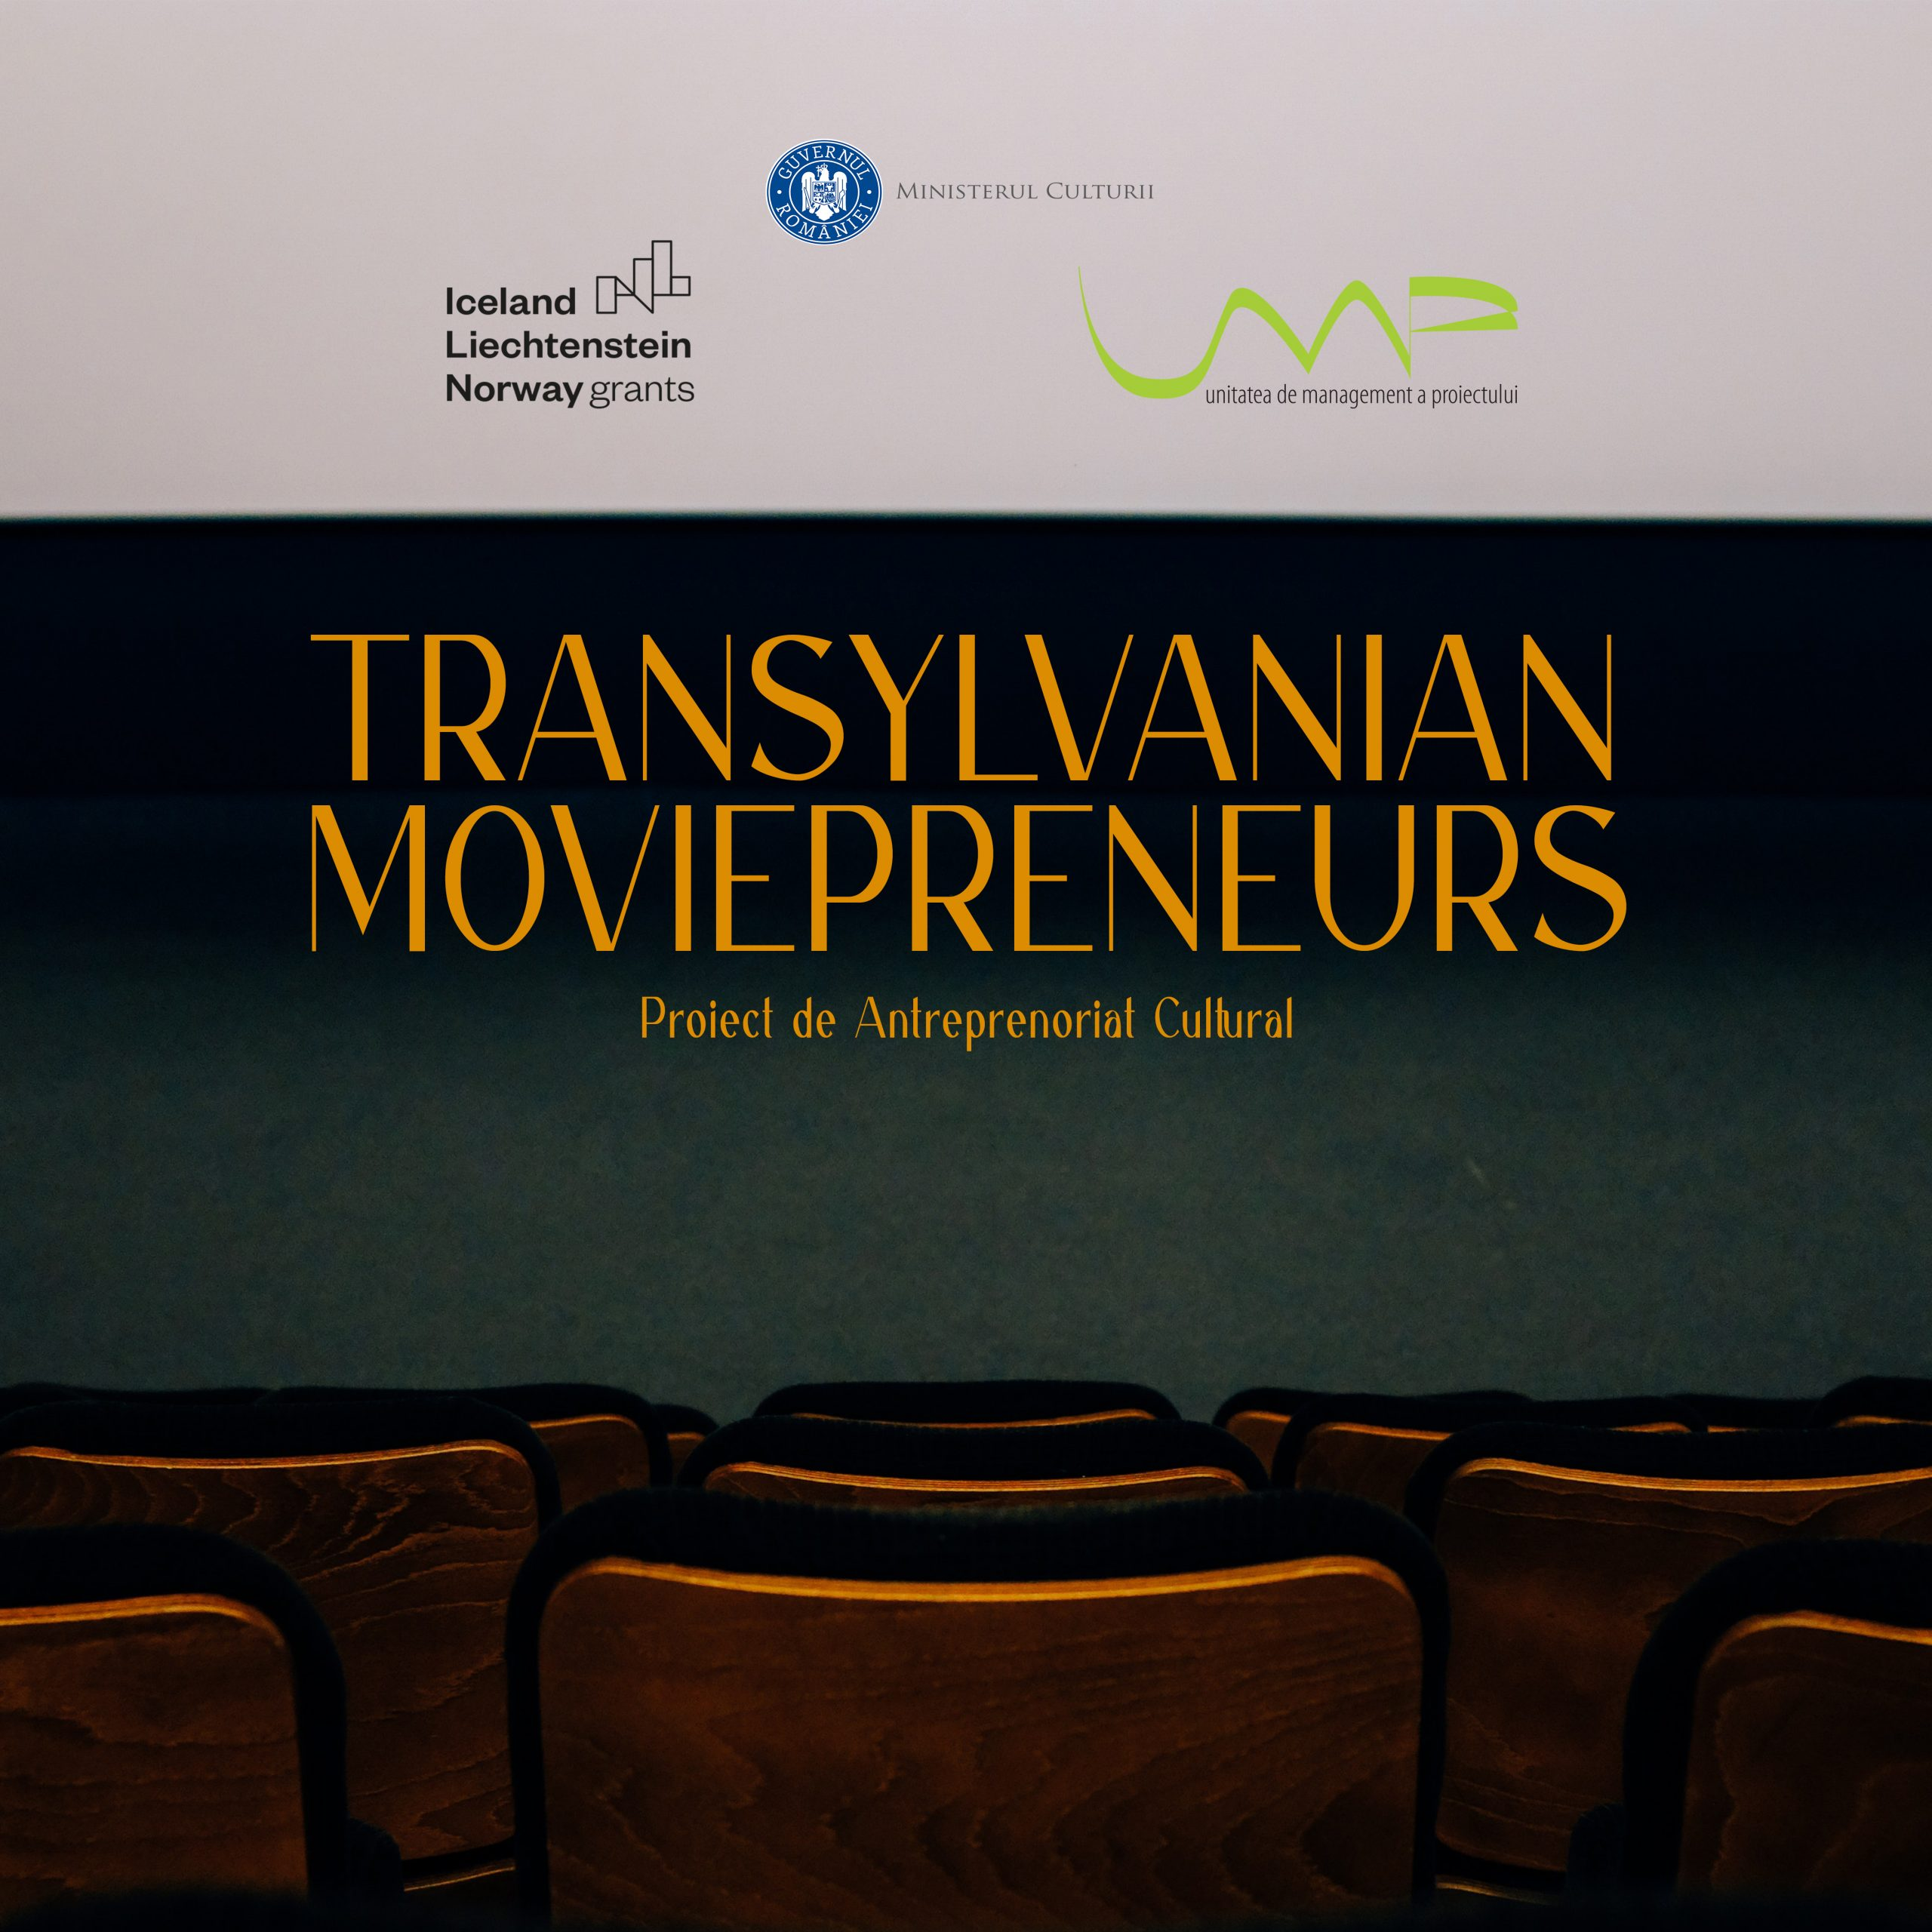 TRANSYLVANIAN MOVIEPRENEURS